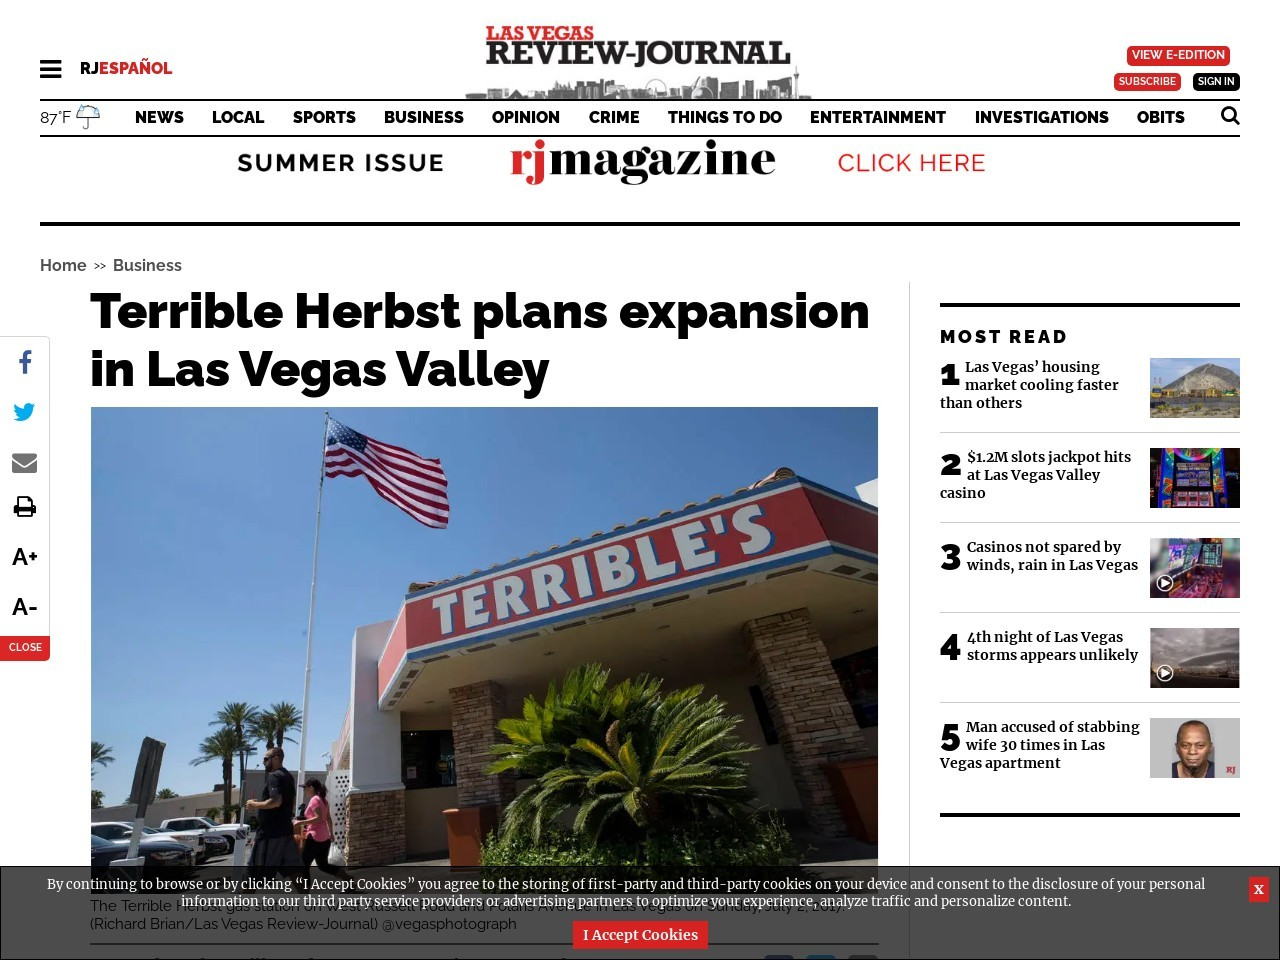 Terrible Herbst plans expansion in Las Vegas Valley